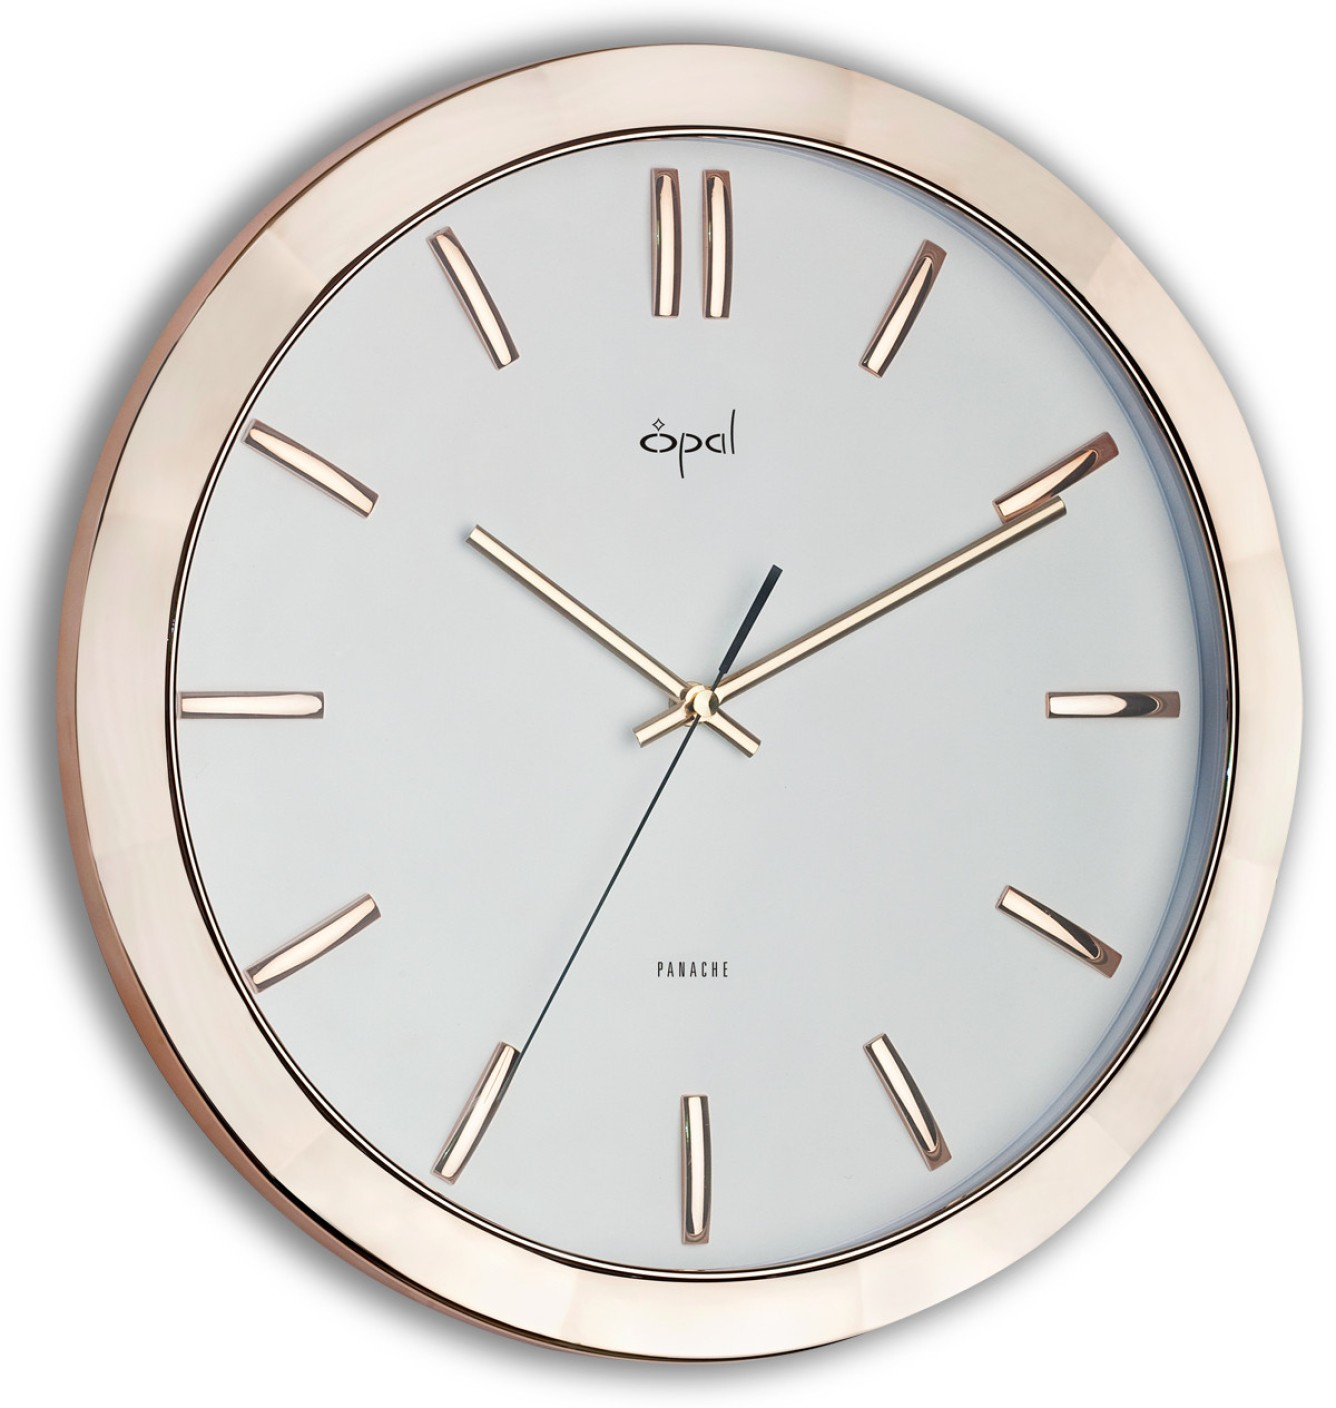 Opal analog wall clock price in india buy opal analog wall clock opal analog wall clock share amipublicfo Choice Image